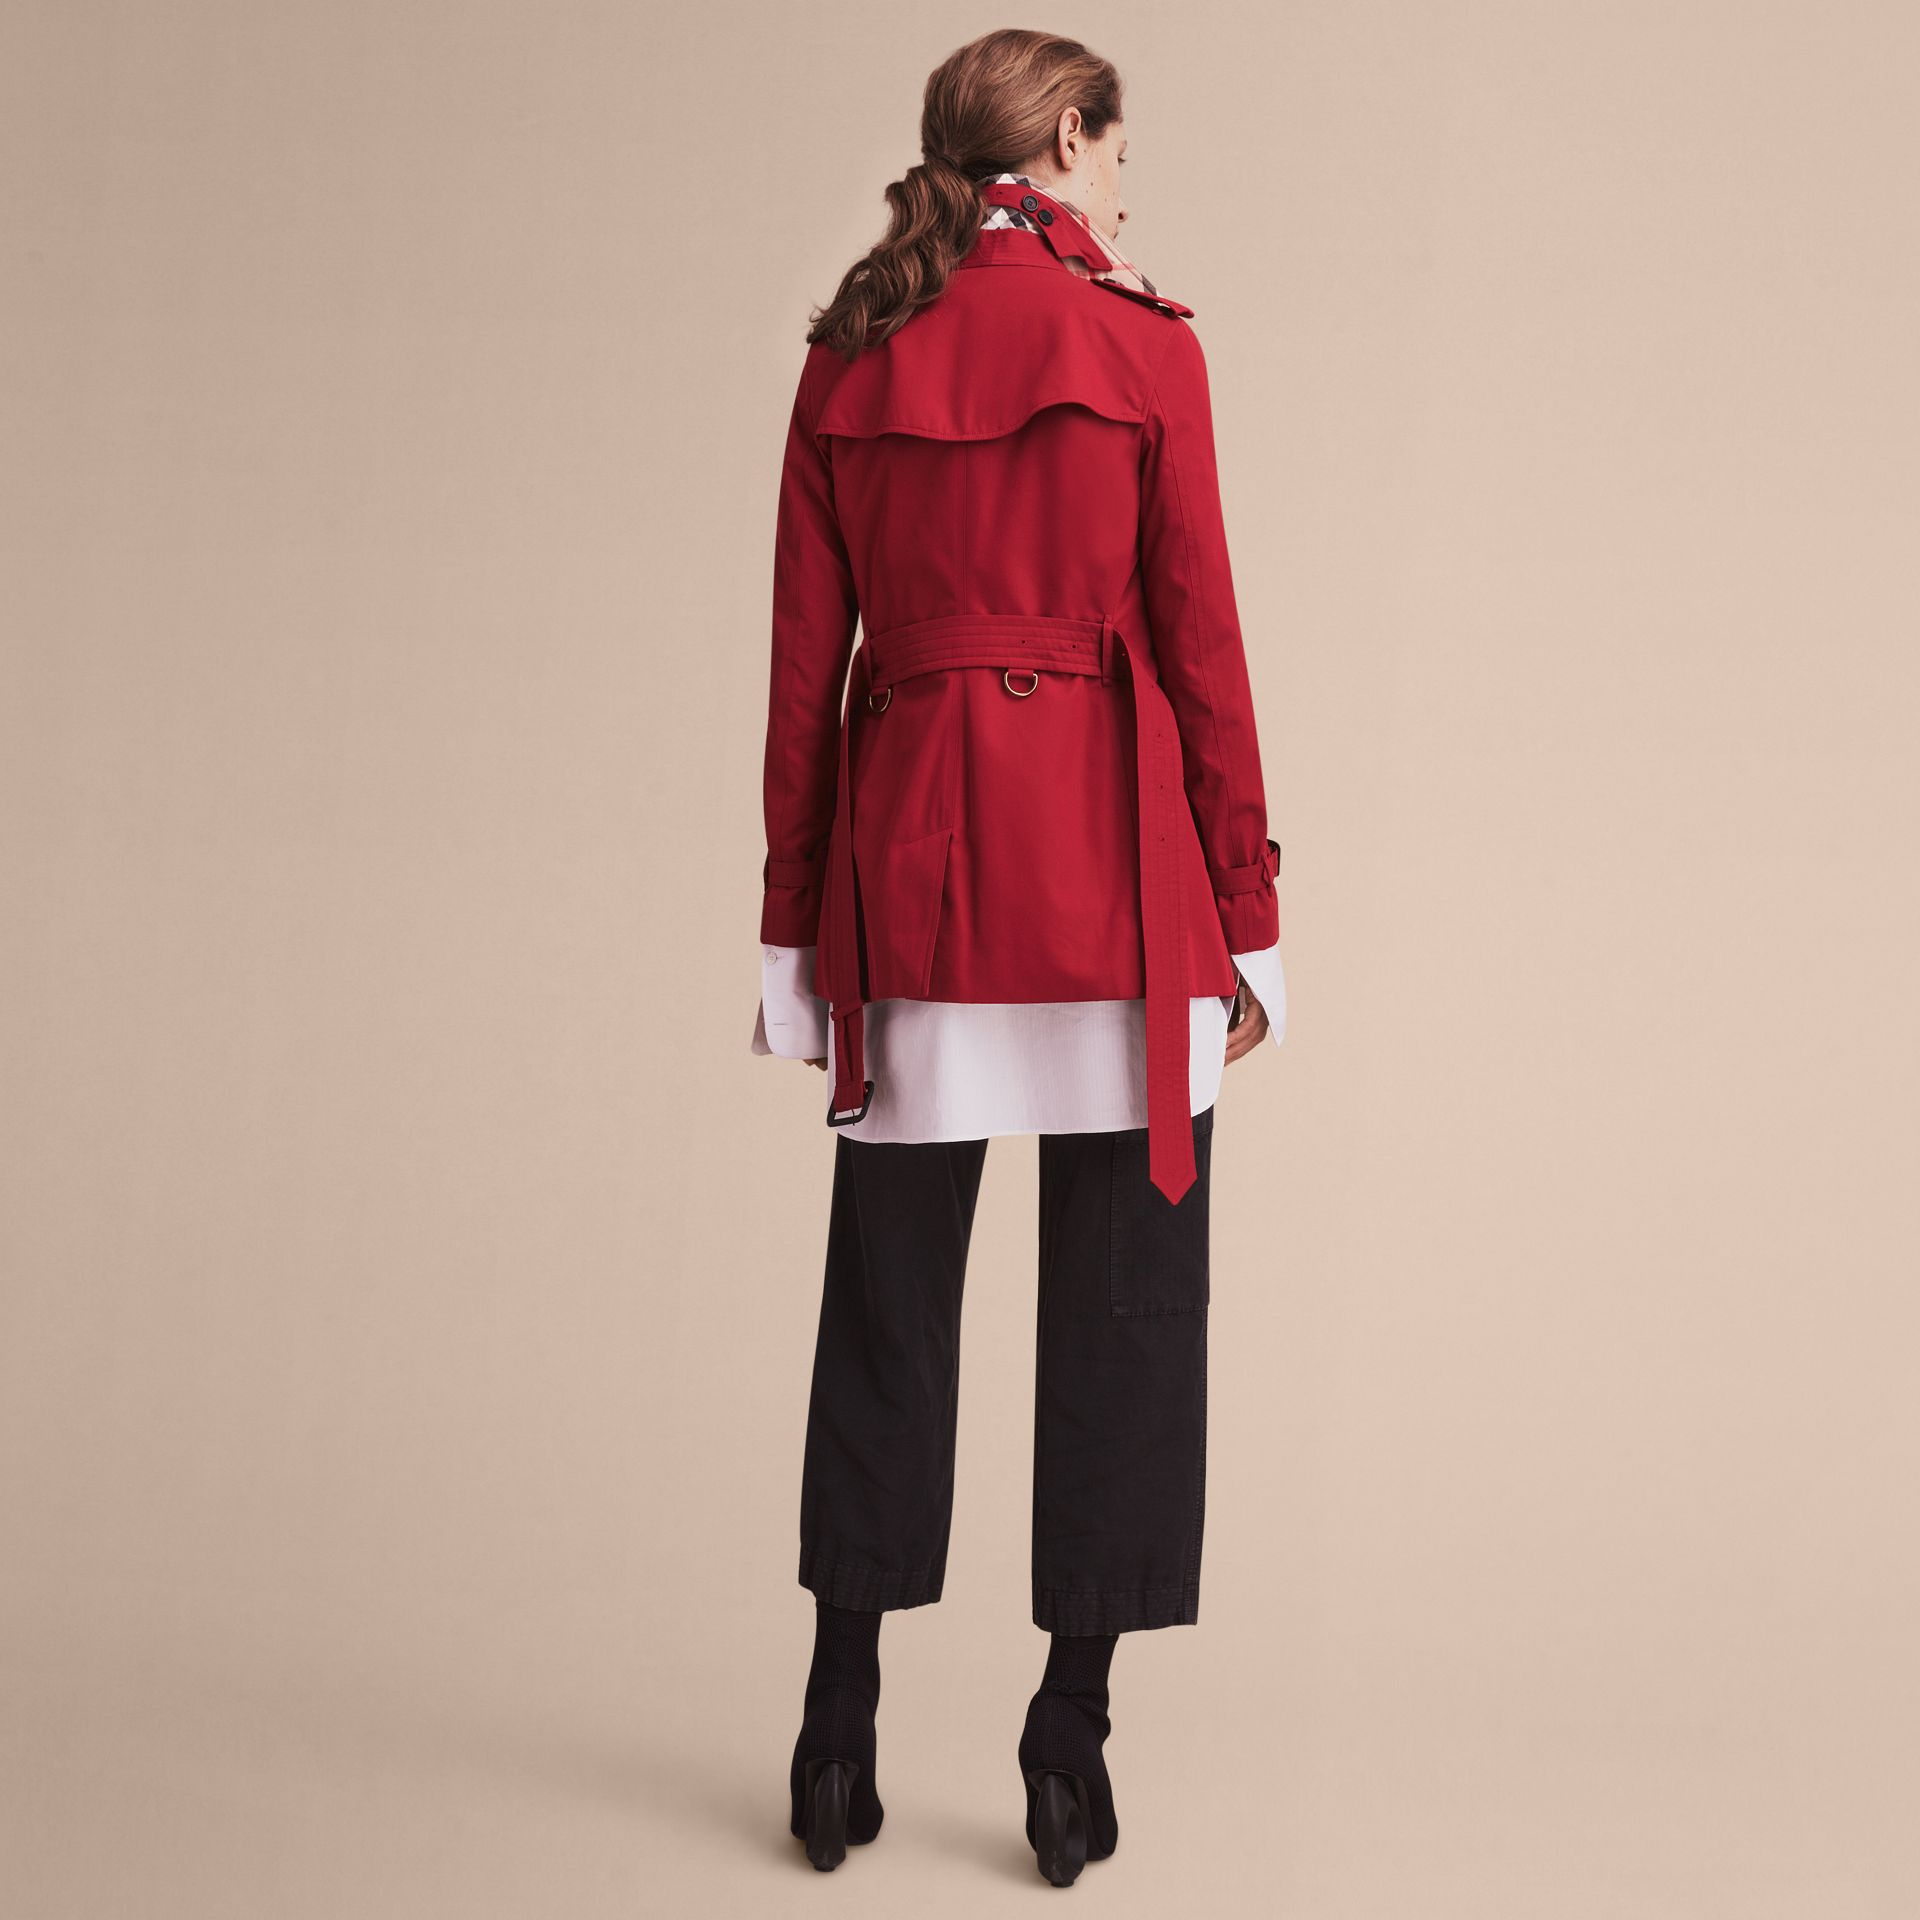 Parade red The Kensington - Trench coat Heritage curto Parade Red - galeria de imagens 4